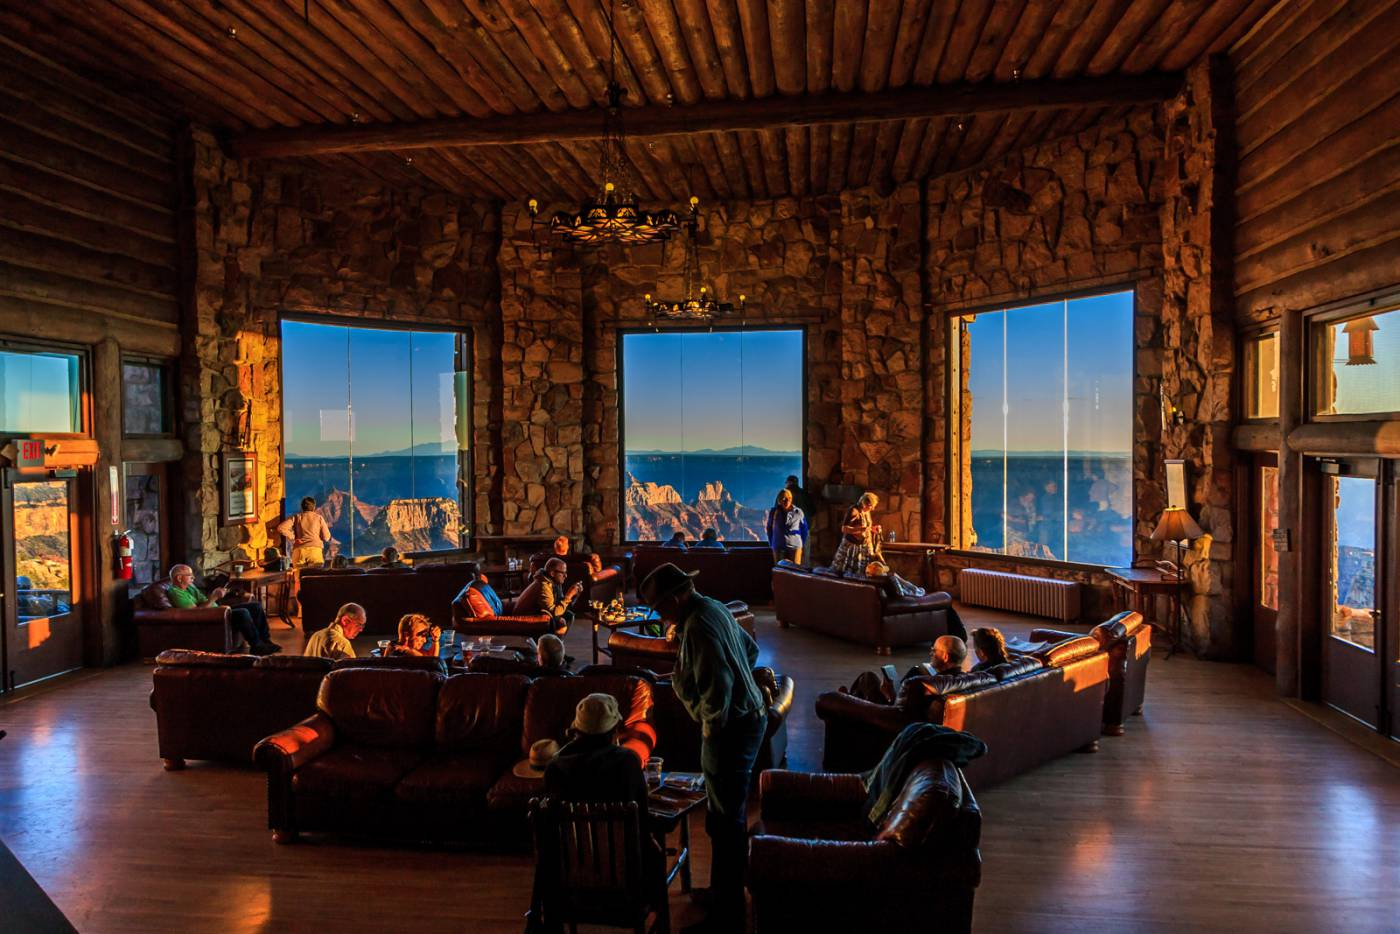 After a hard day on the trail, it was nice to relax in Grand Canyon Lodge.